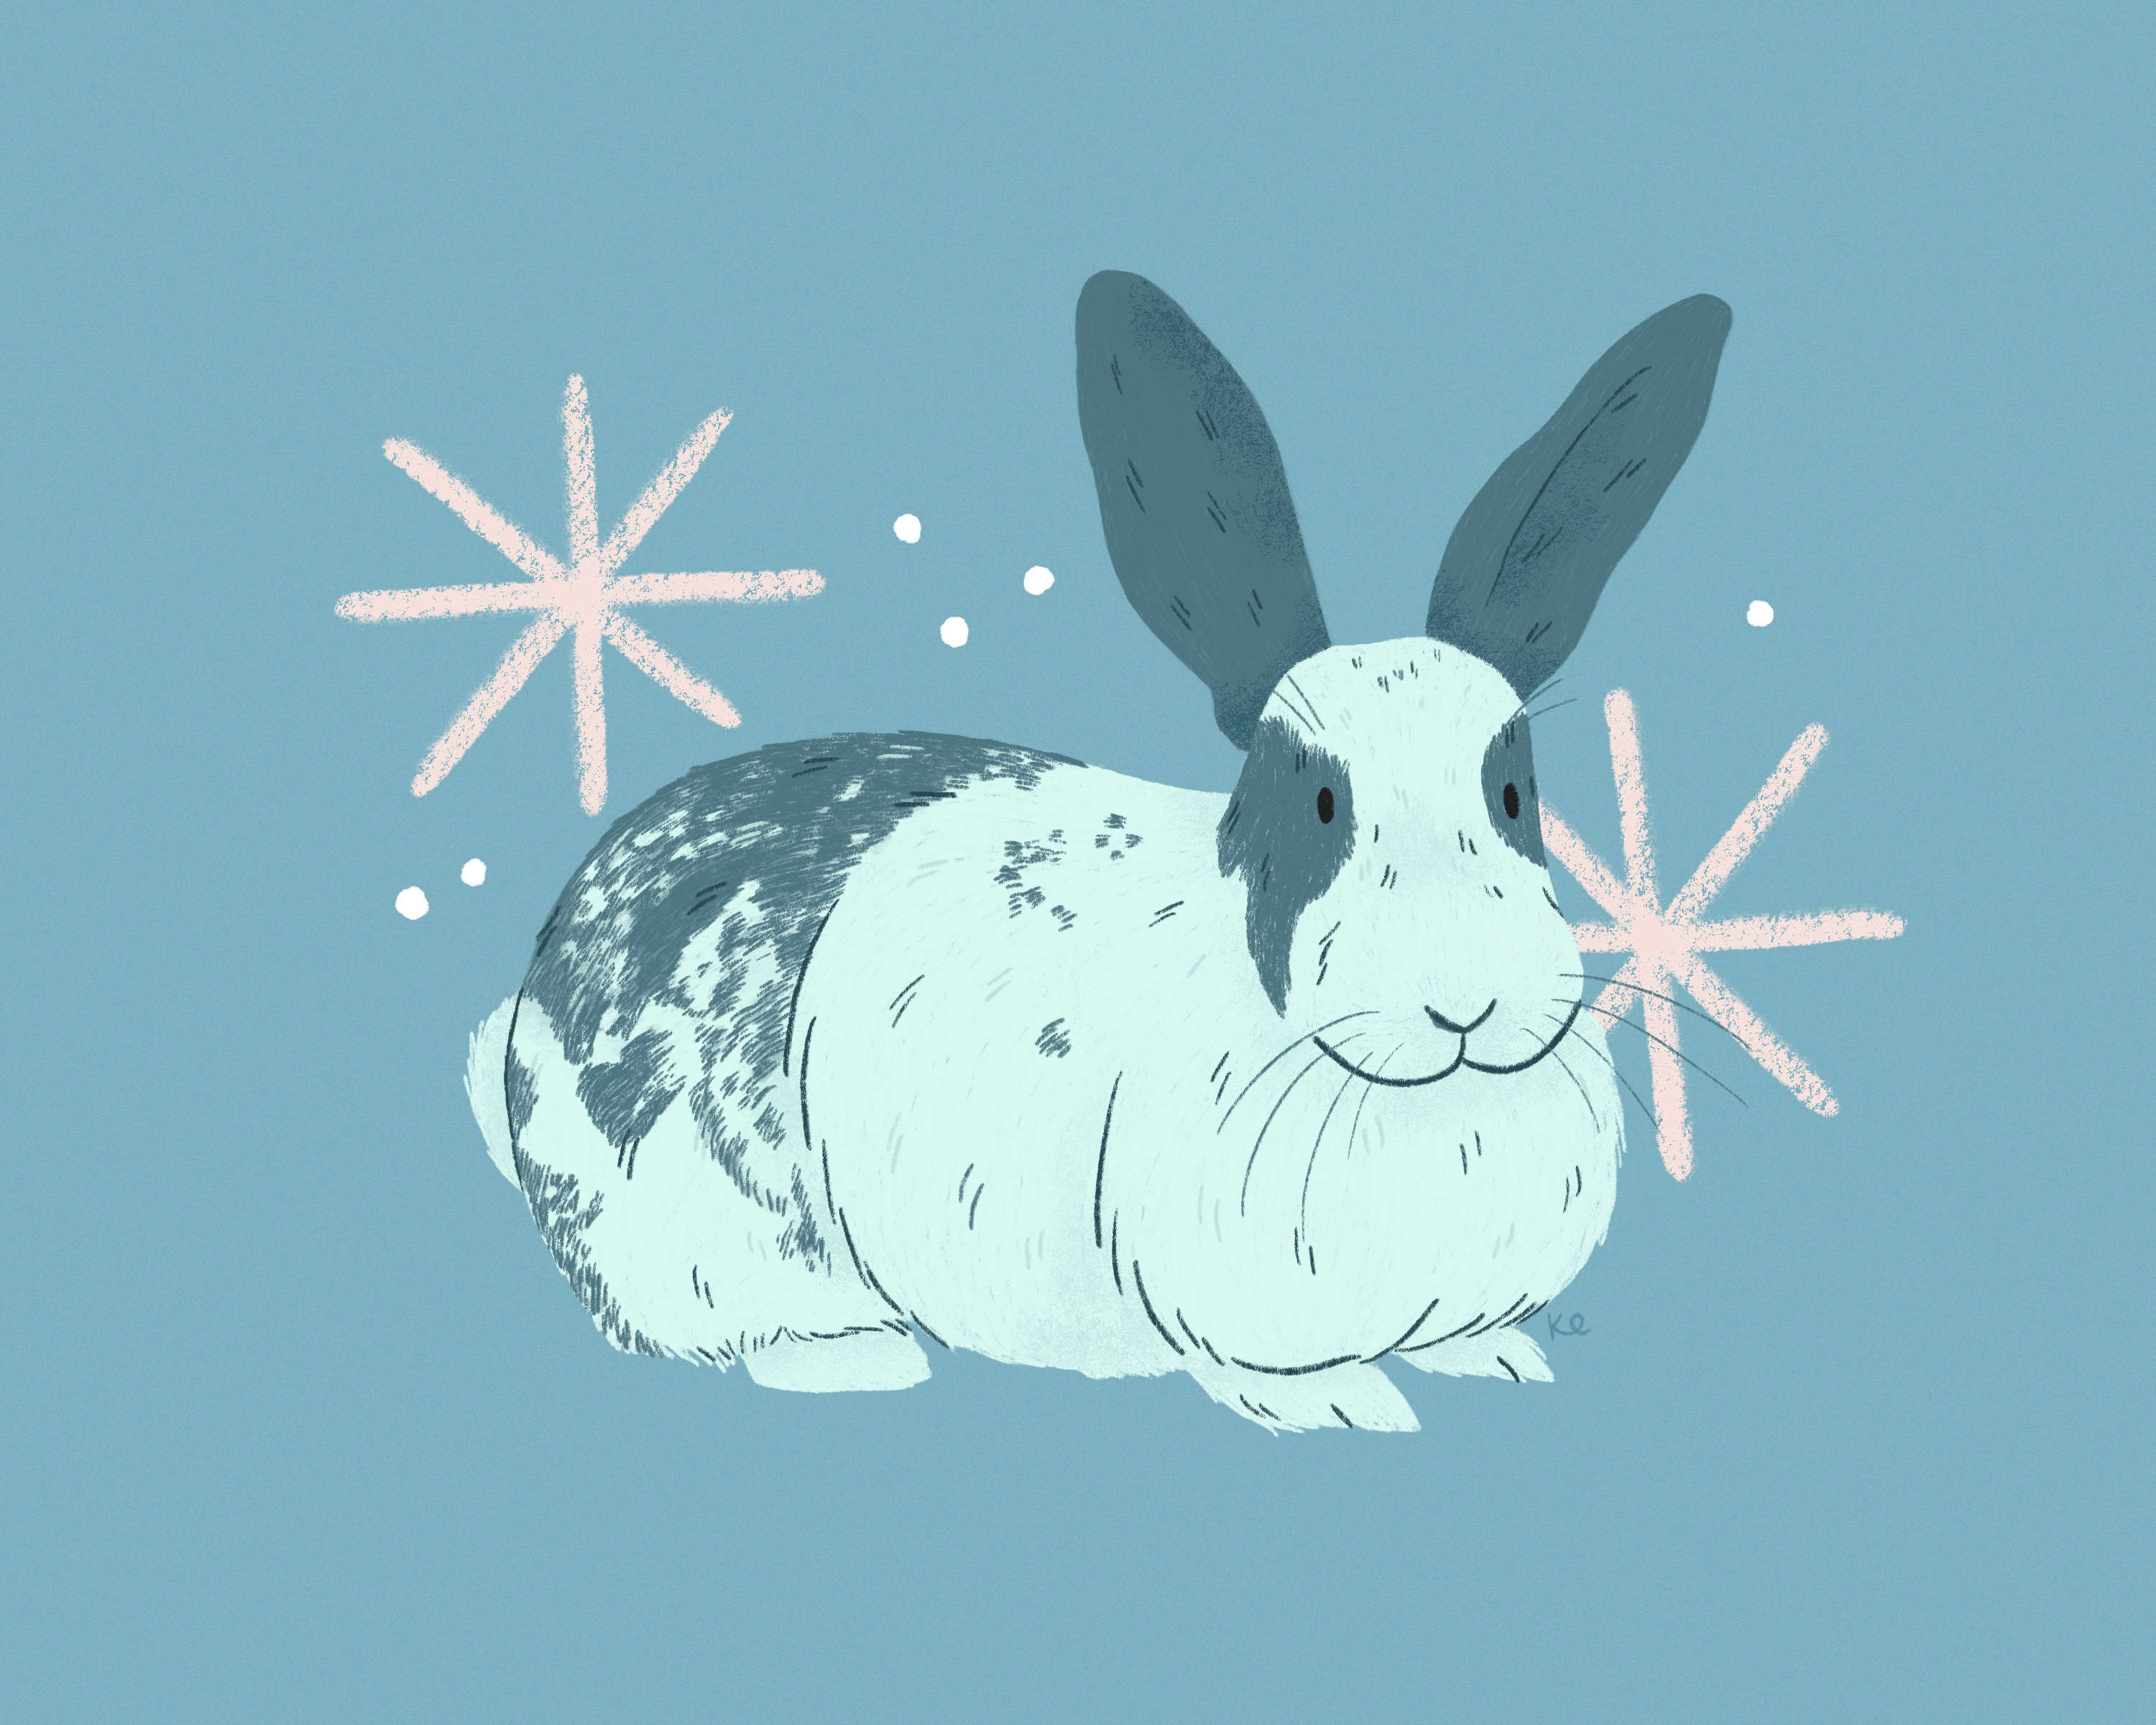 An illustration of a blue bunny rabbit